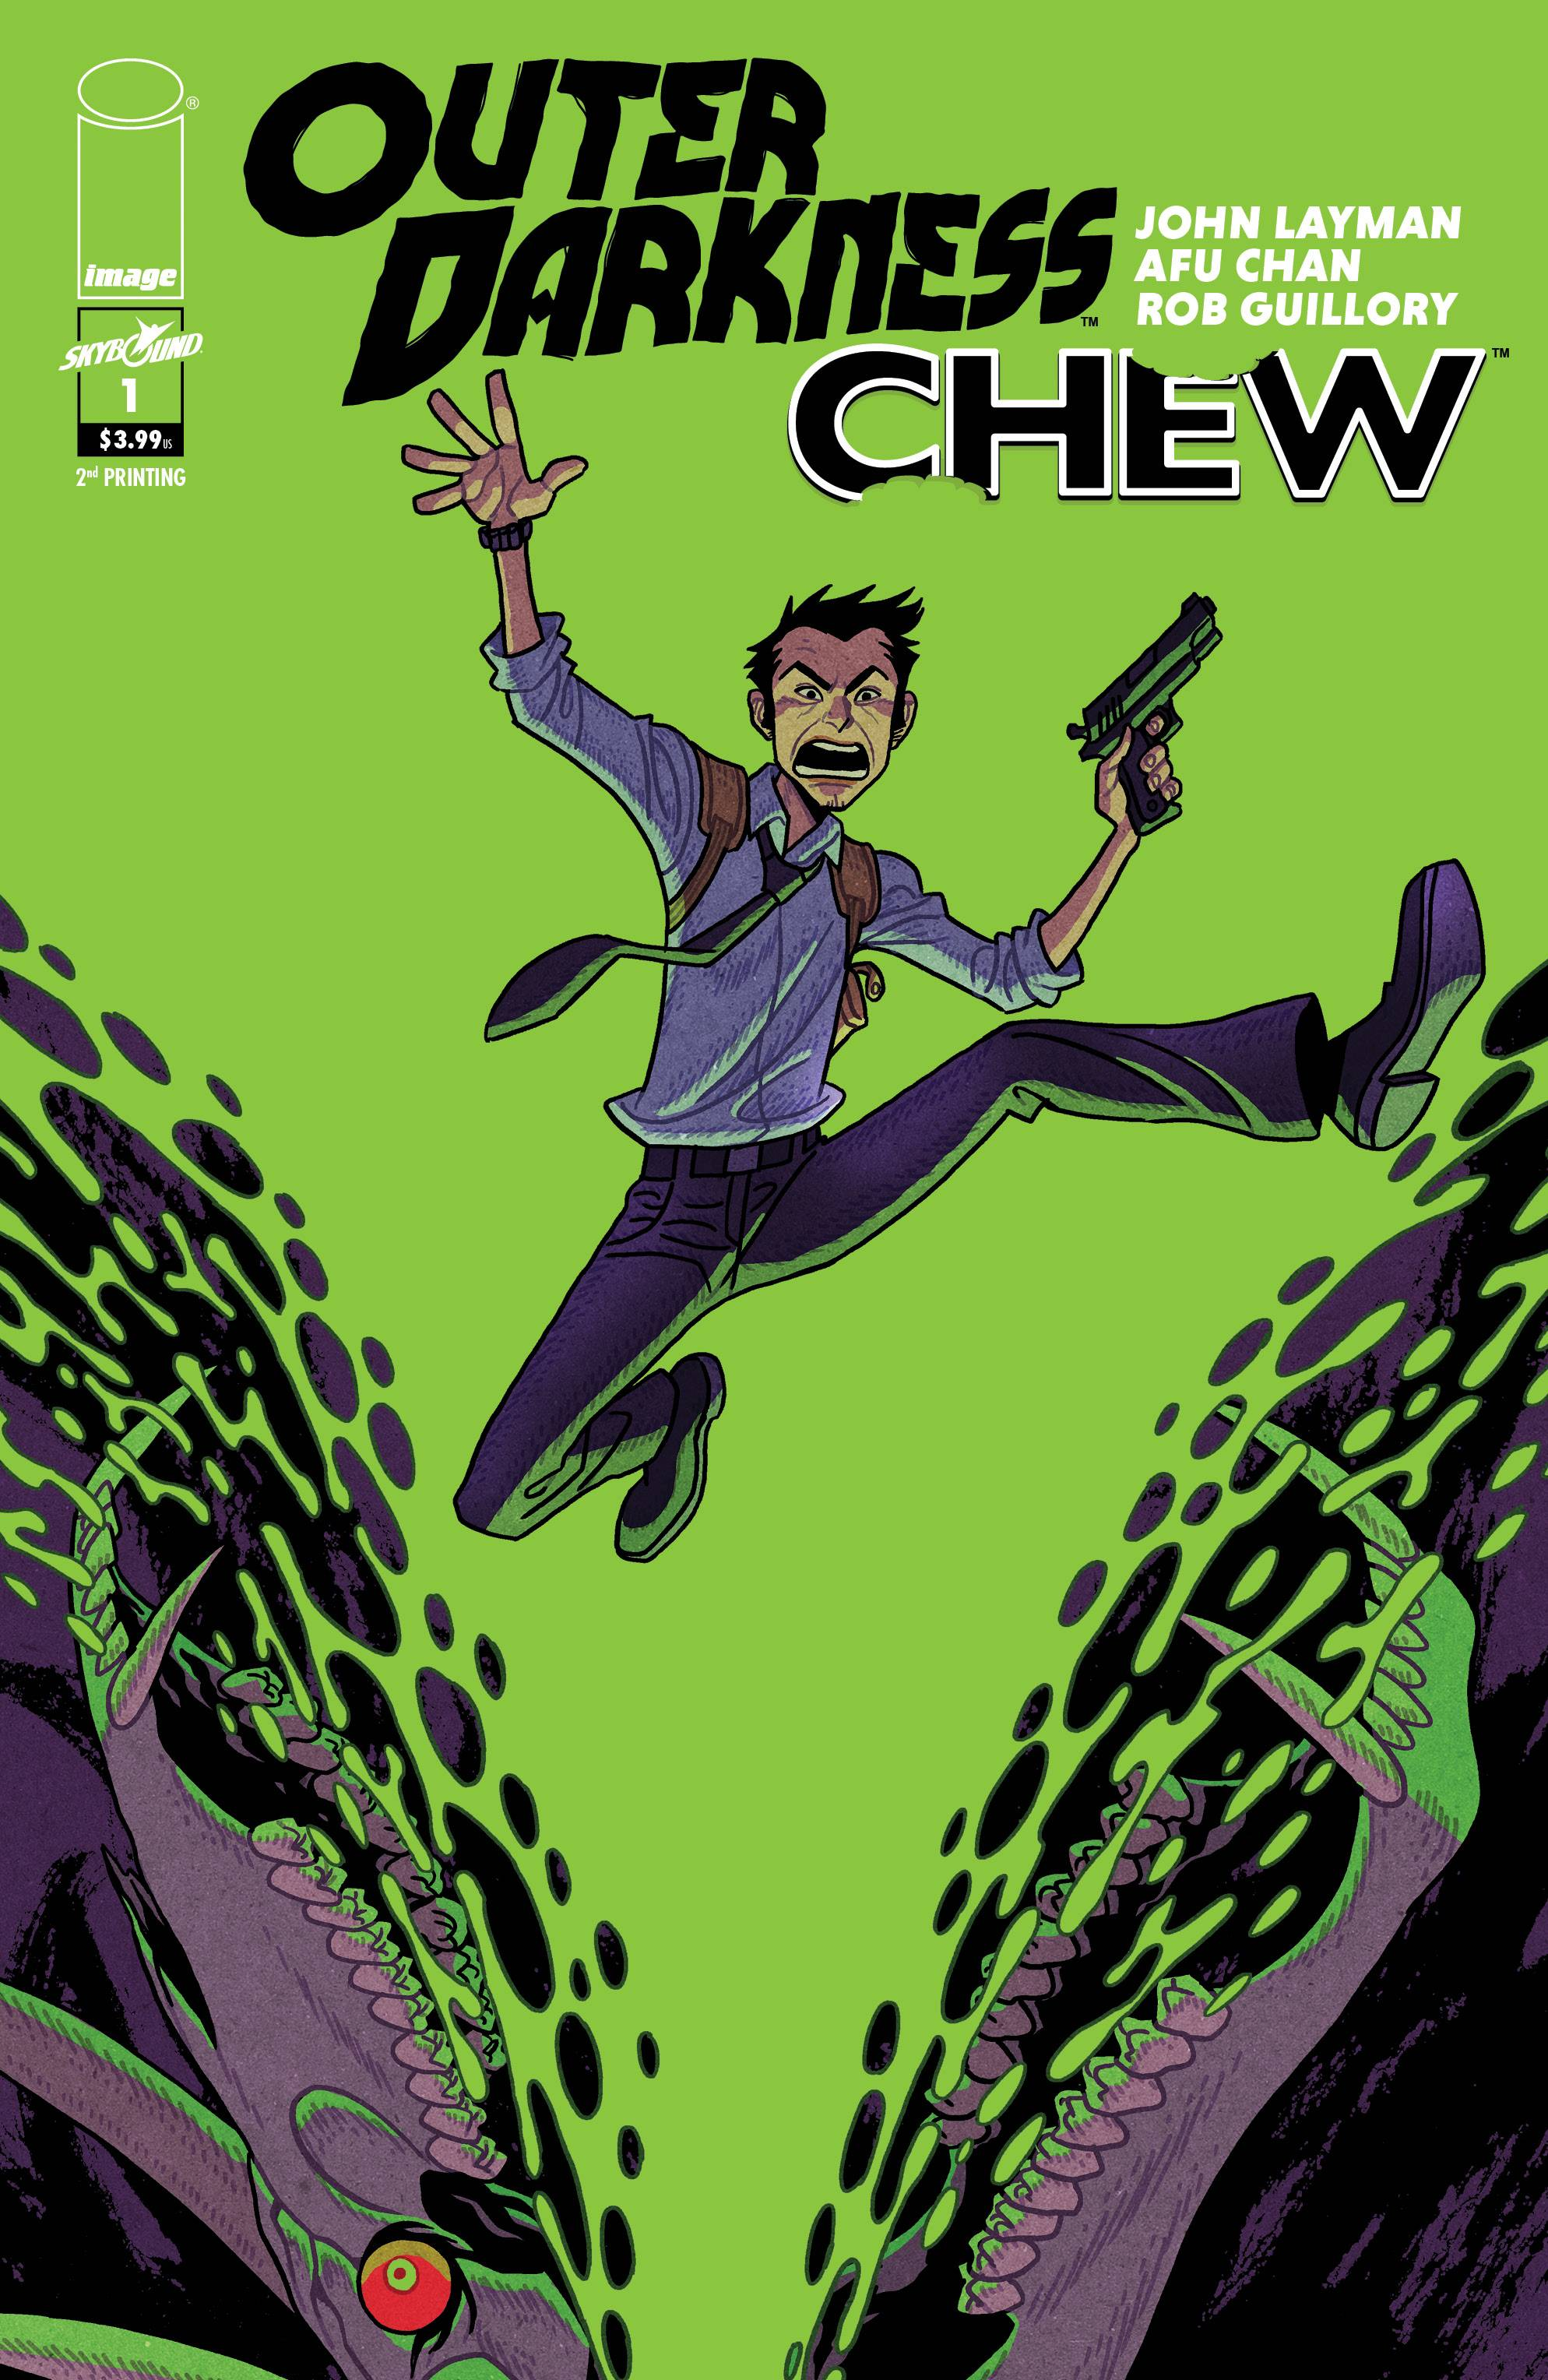 04/08/2020 OUTER DARKNESS CHEW #1 (OF 3) 2ND PTG (MR)